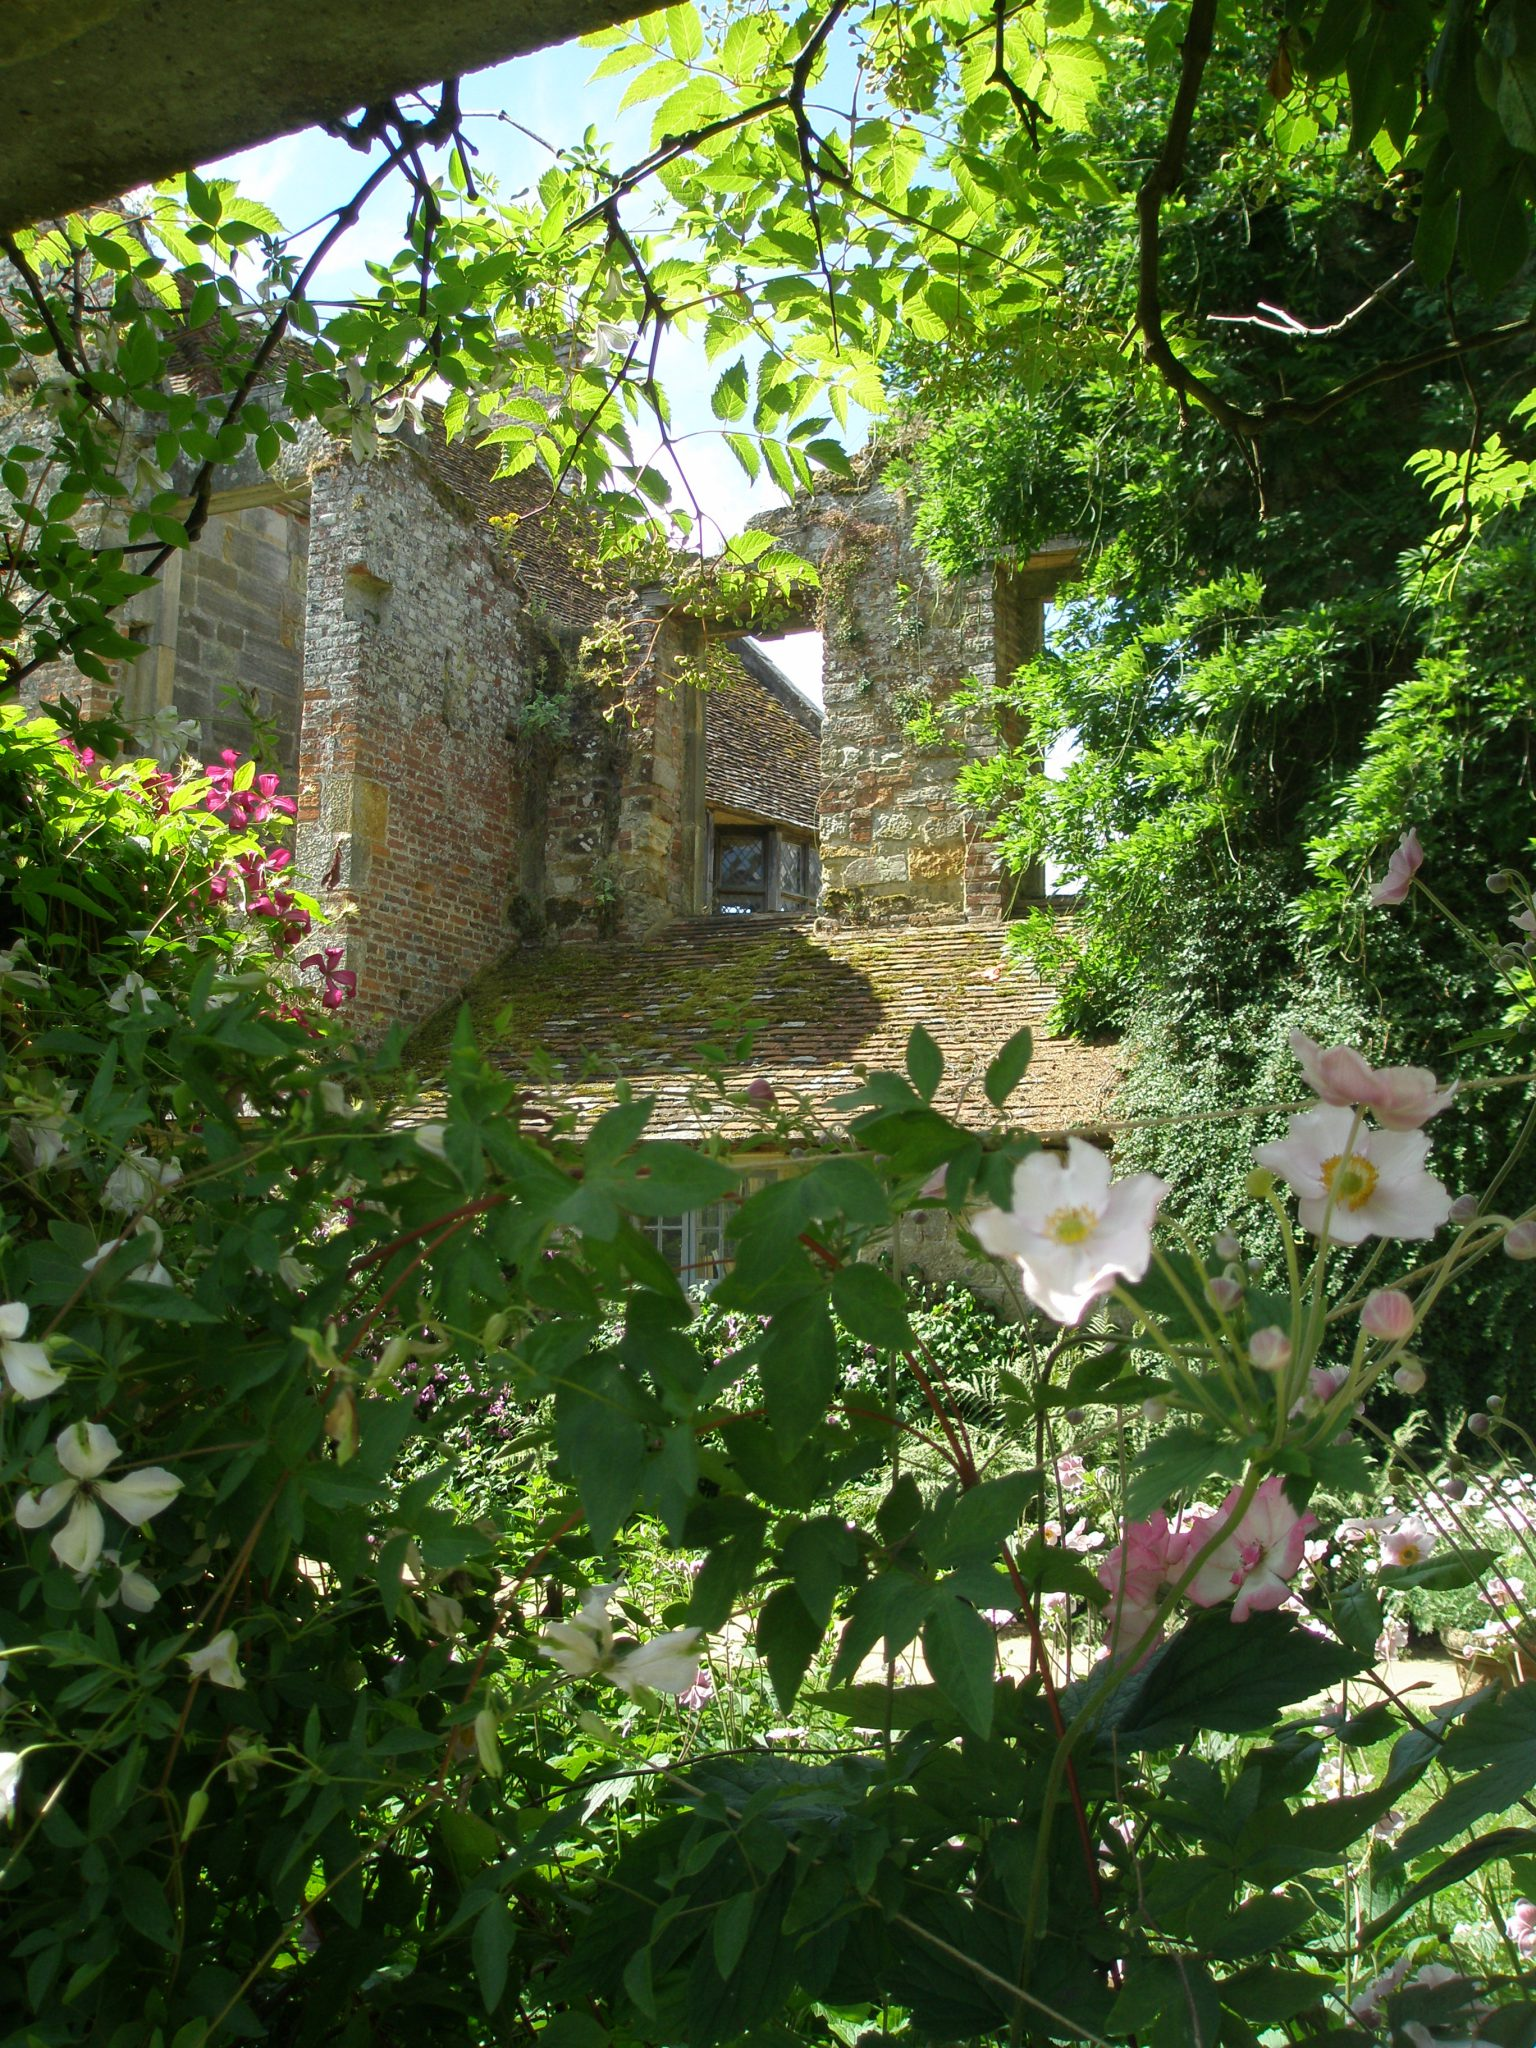 Inside the small, walled Old Castle Garden